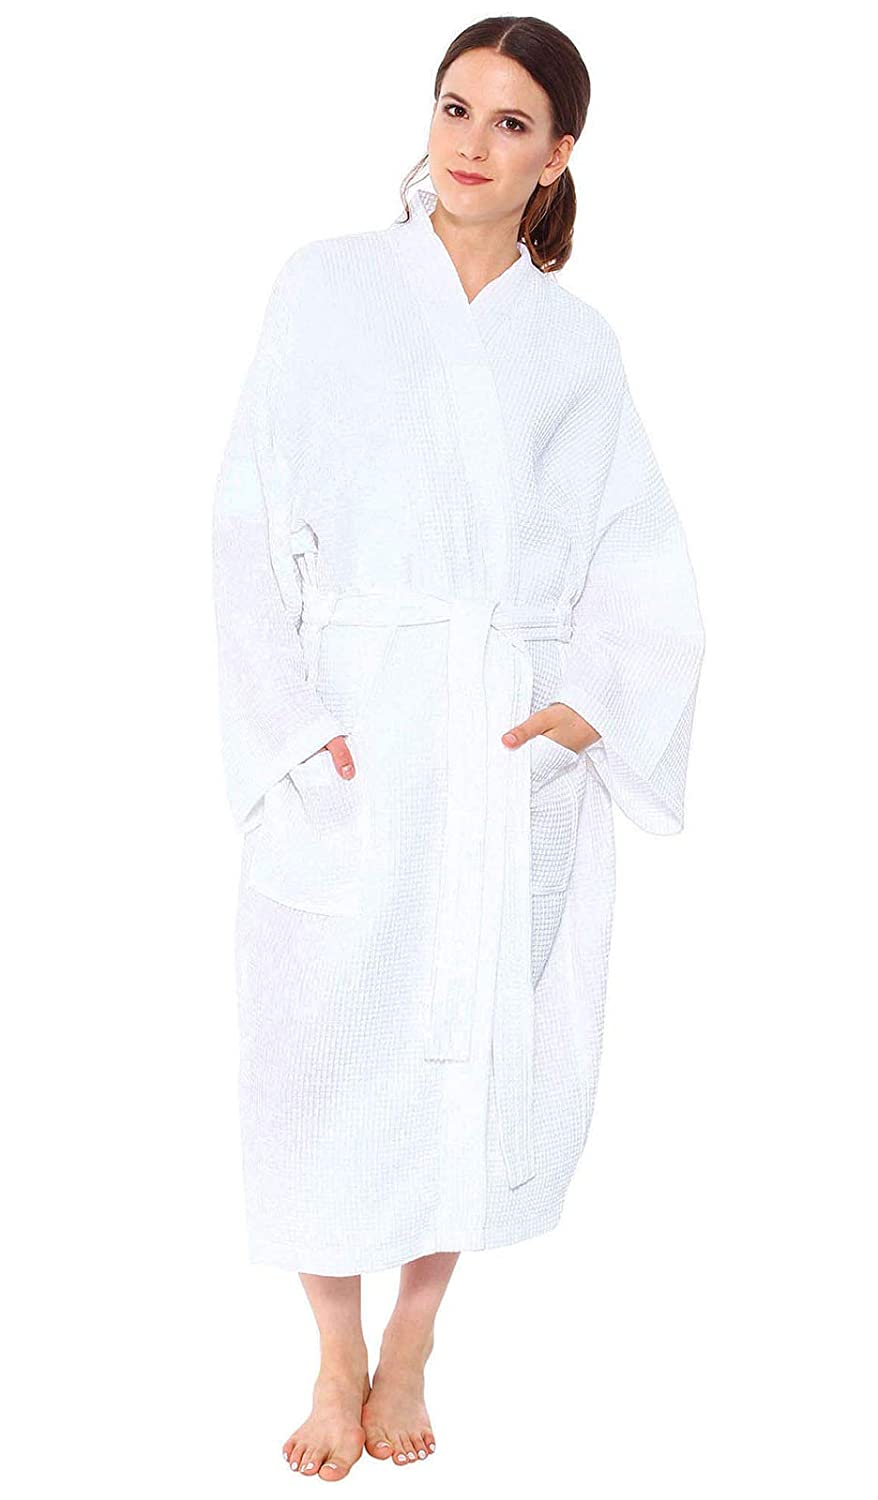 331b3bc089 12 Bulk Lot Wholesale-cozy Cotton Style Waffle Pattern Spa   Bath Robe-sleepwear  White at Amazon Women s Clothing store  Robe Hooks